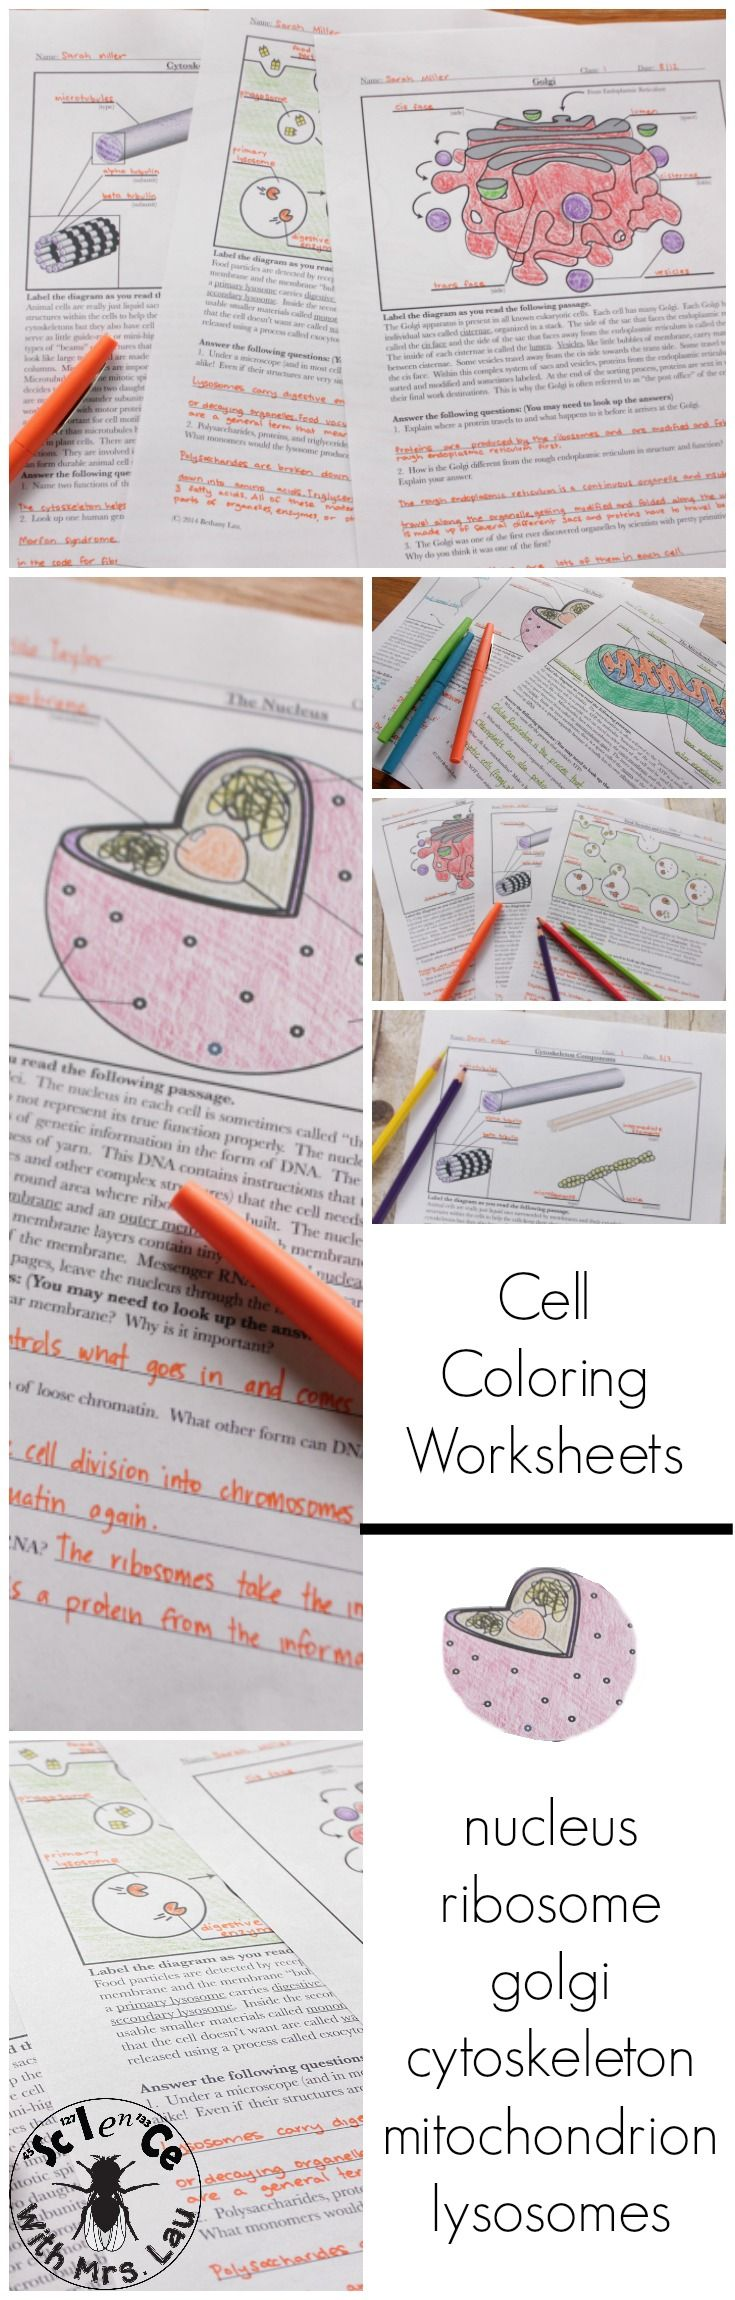 cell and organelle coloring page and diagram unit bundle group